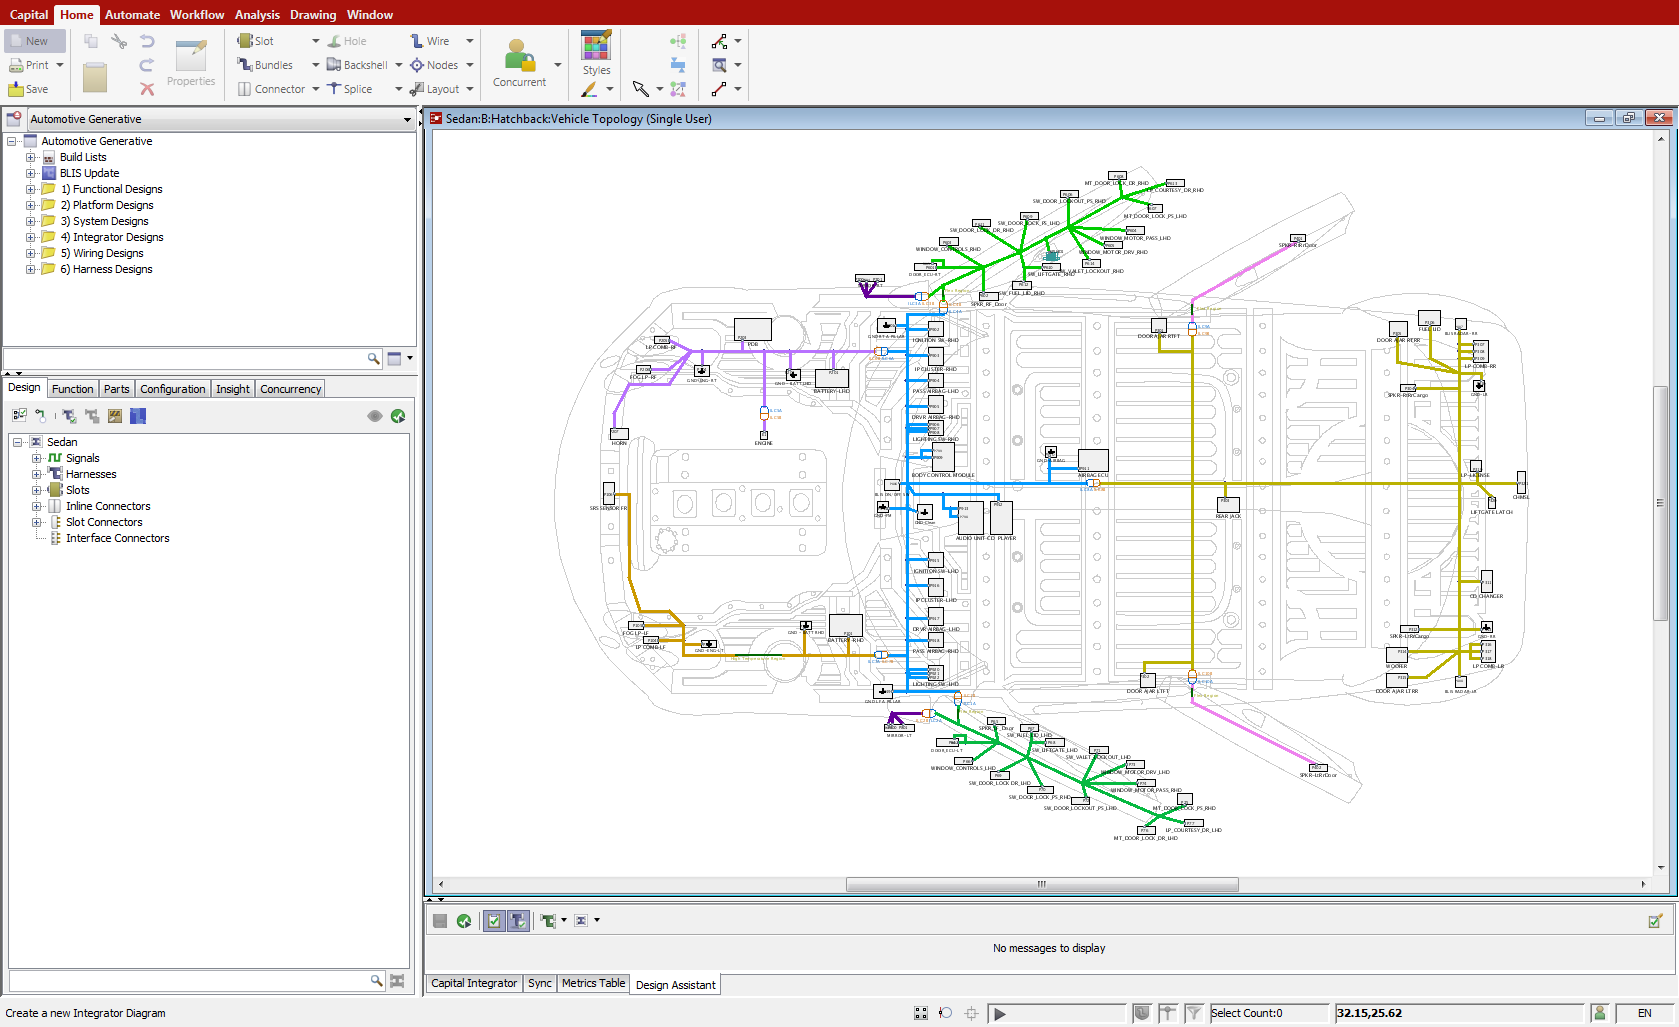 CapitalIntegrator E4720331?q=80&w=1600&fit=max capital integrator electrical design automation mentor graphics wiring harness design software at soozxer.org